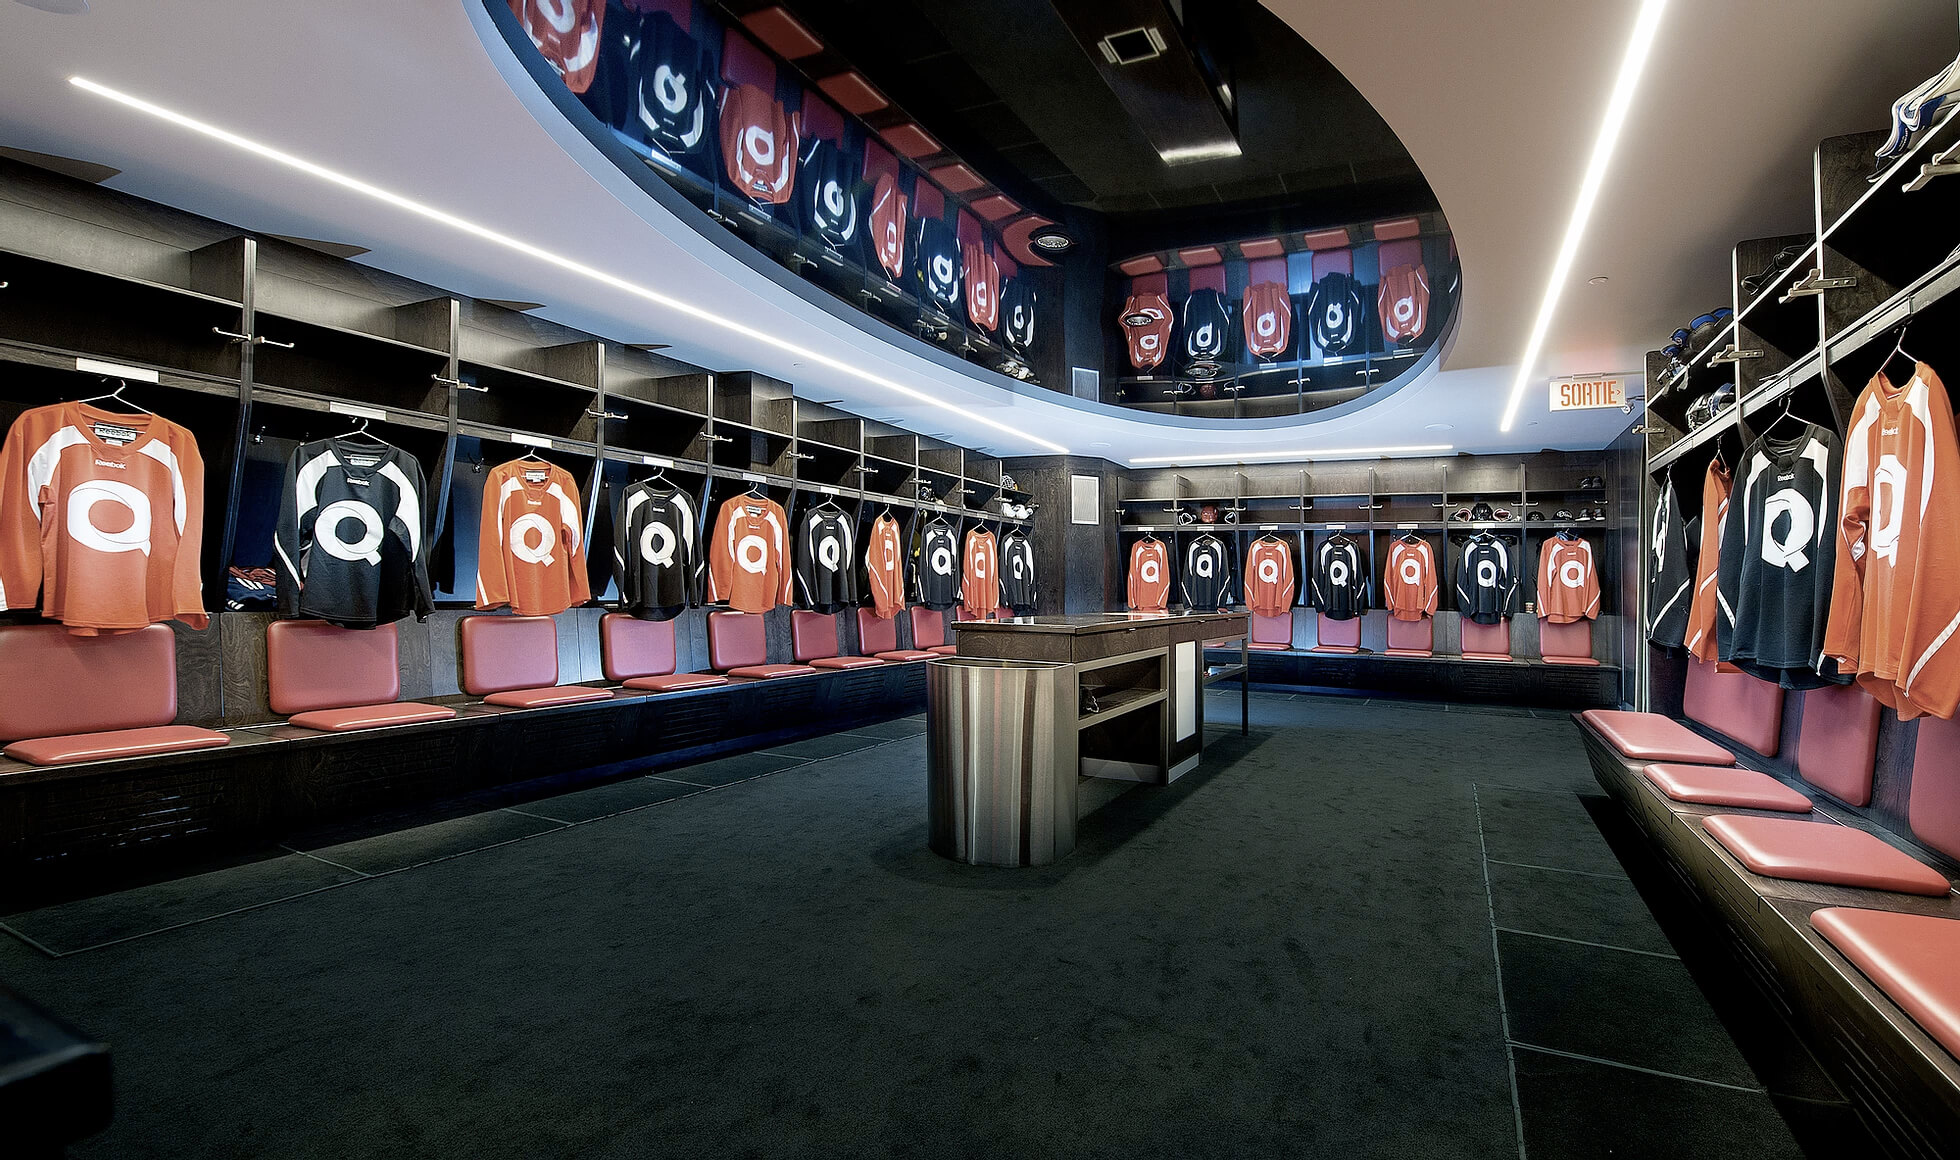 Luxury hockey dressing room at Hockey Etcetera with individual player stalls, each with their own Quartexx practice jersey.